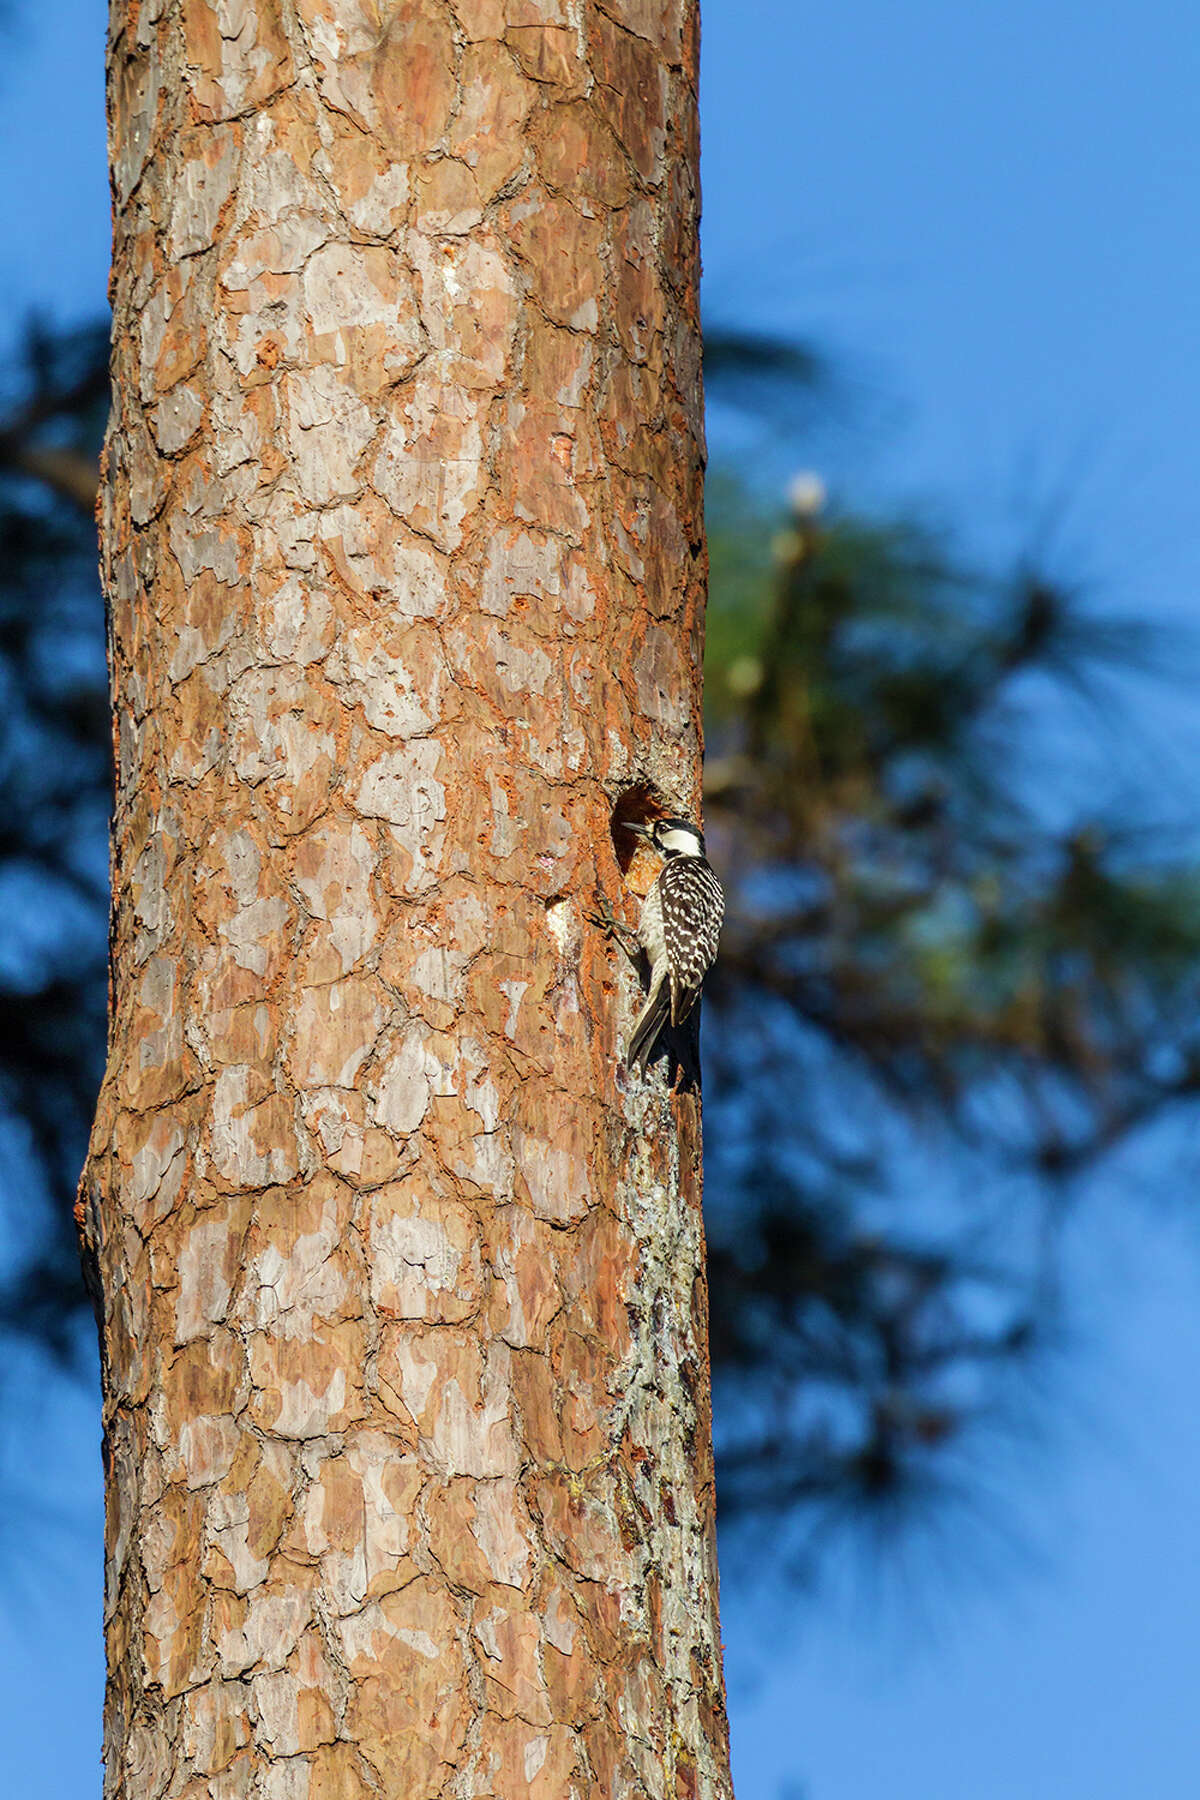 The endangered red-cockaded woodpecker, about the size of a cardinal, lives in remnants of the Southern Pine Forest like the W. G. Jones State Forest.